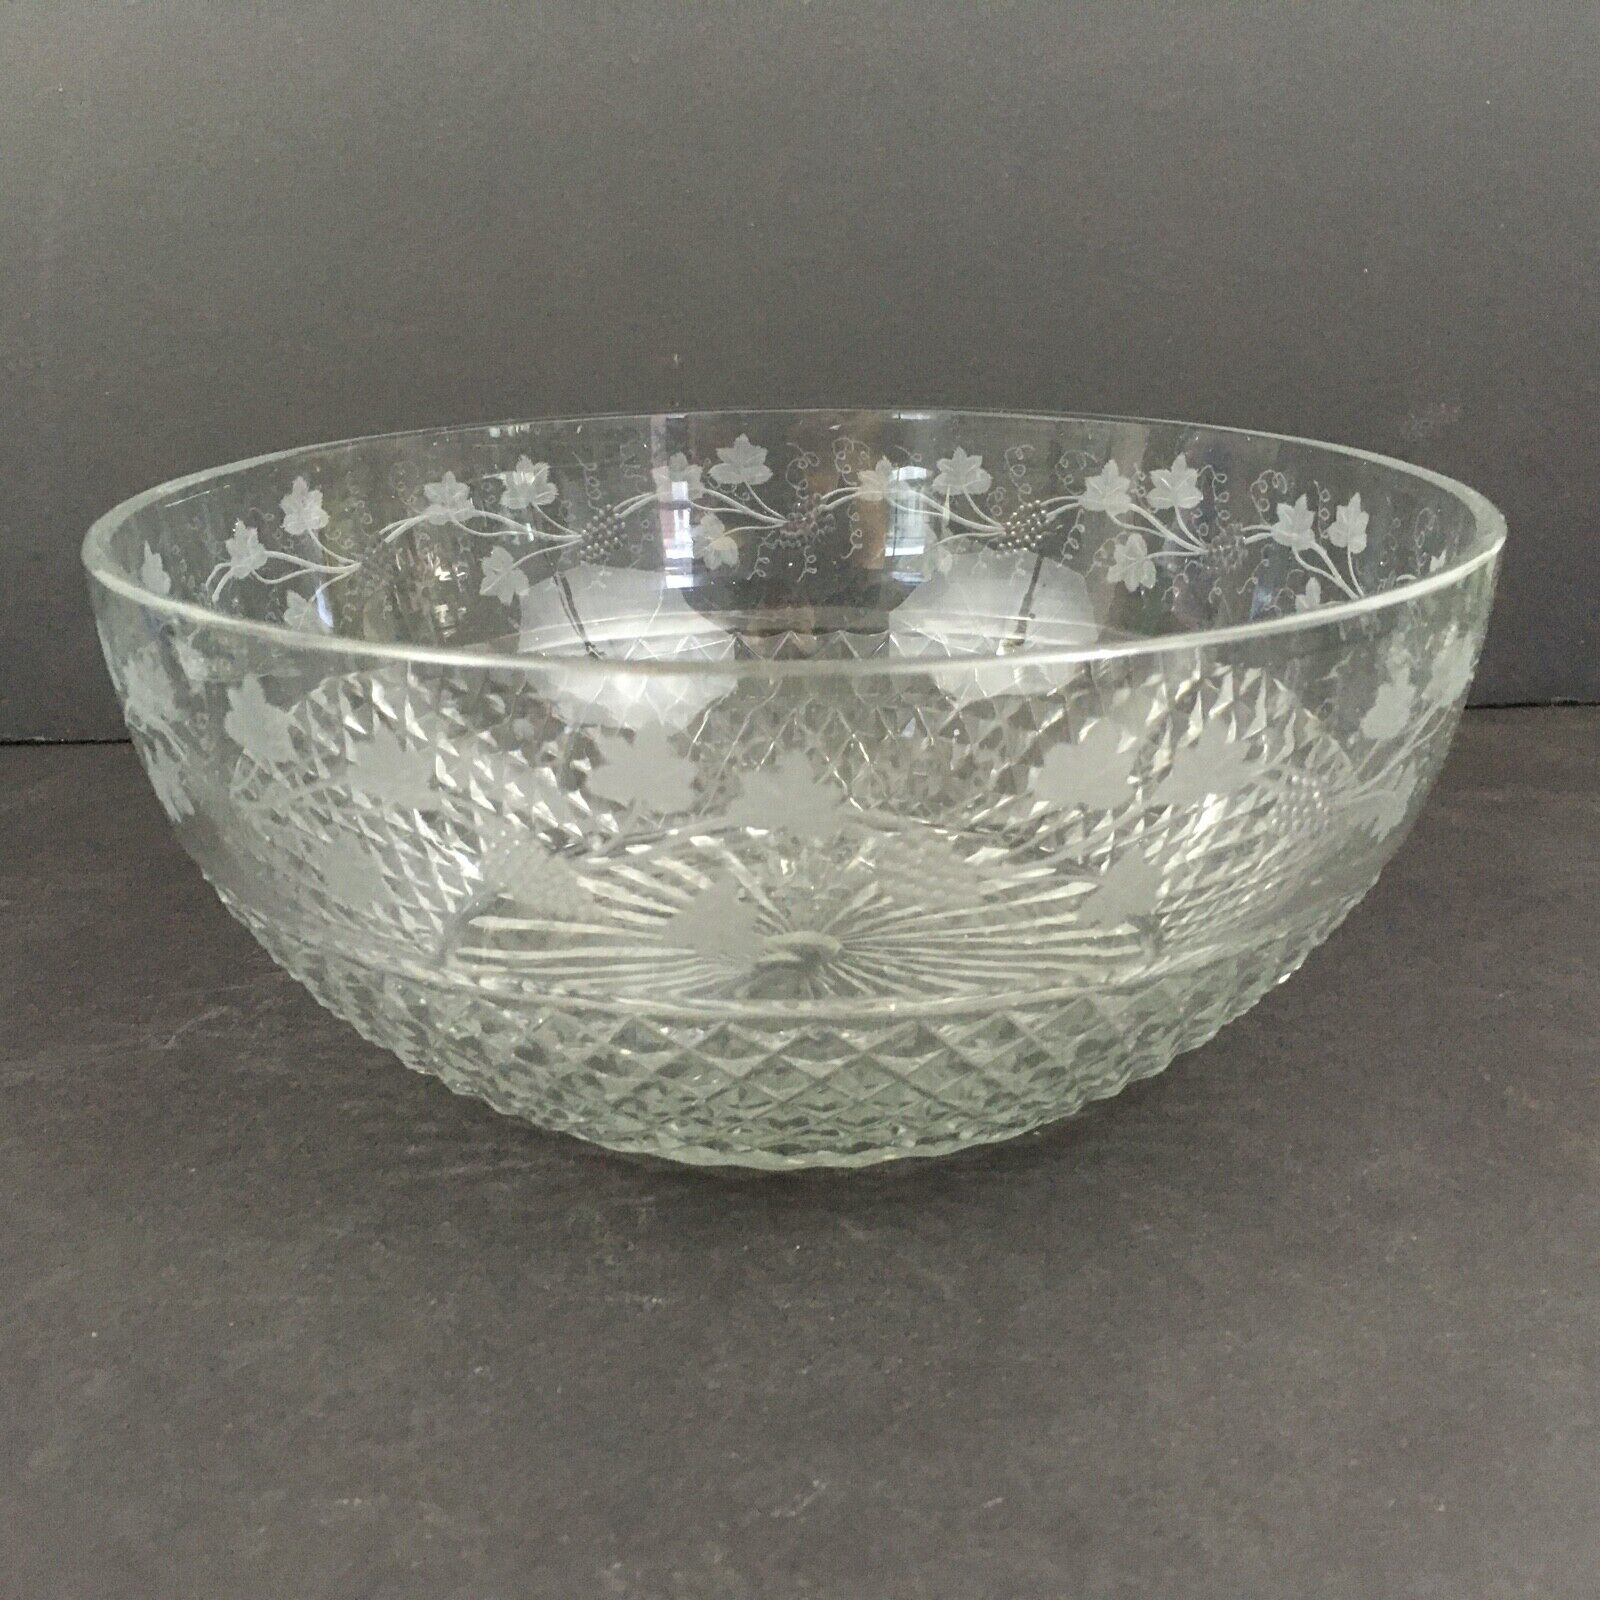 Antique Cut & Engraved Glass Bowl Grapevine and Diamond Pattern